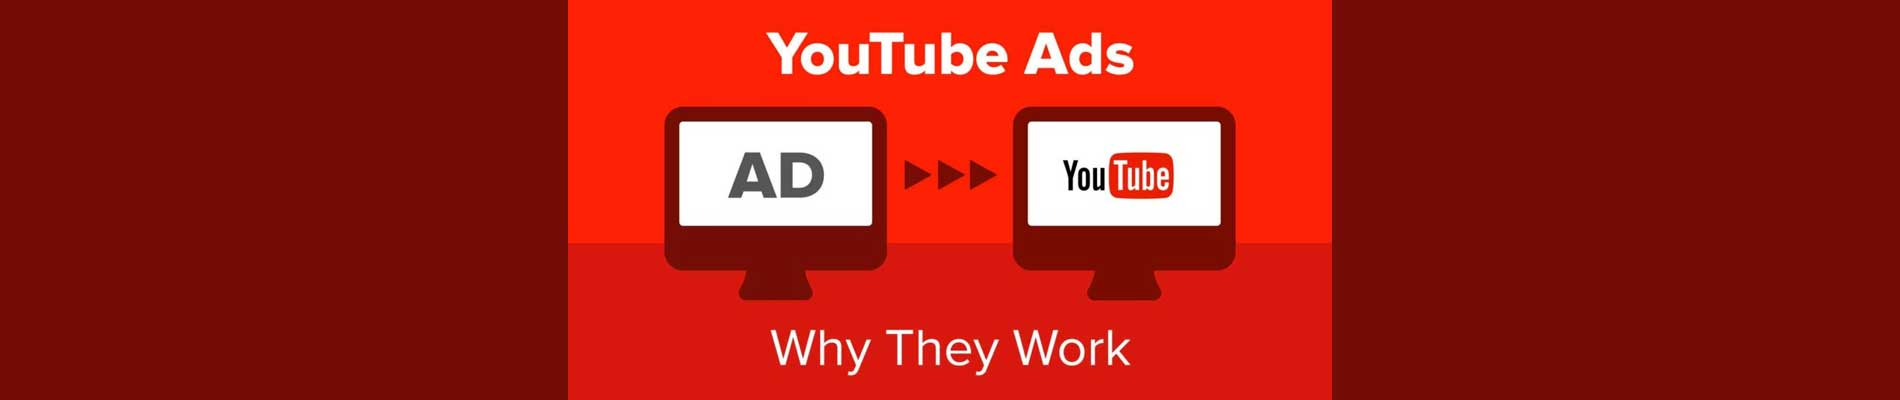 youtube video ads marketing